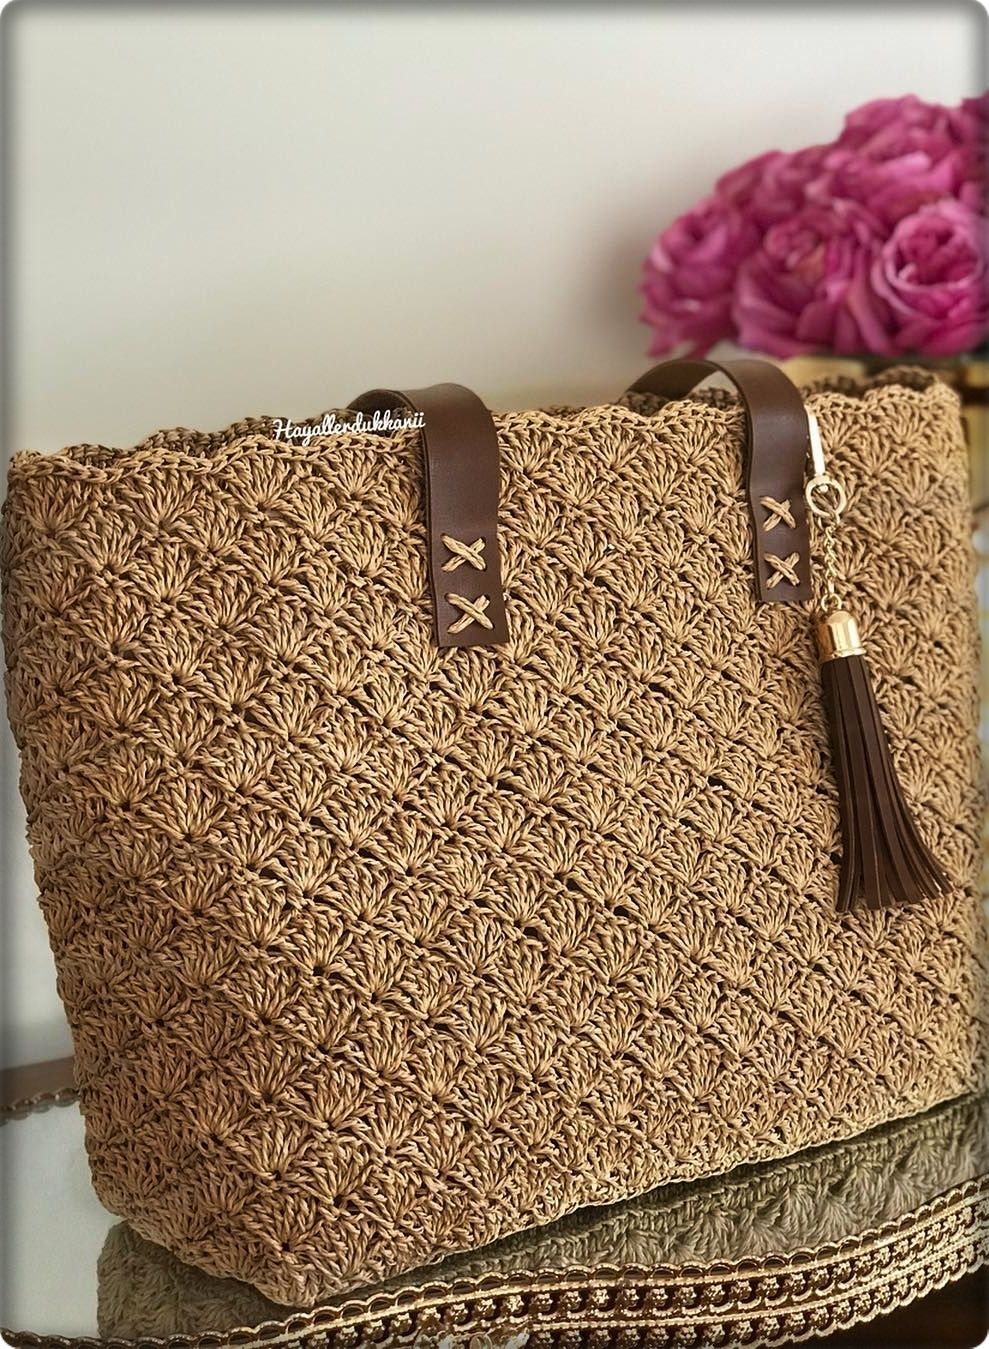 2019 March Crochet Bag Pattern Ideas. New fashion brown color knitting shoulder bag for ladies. #crochethandbags